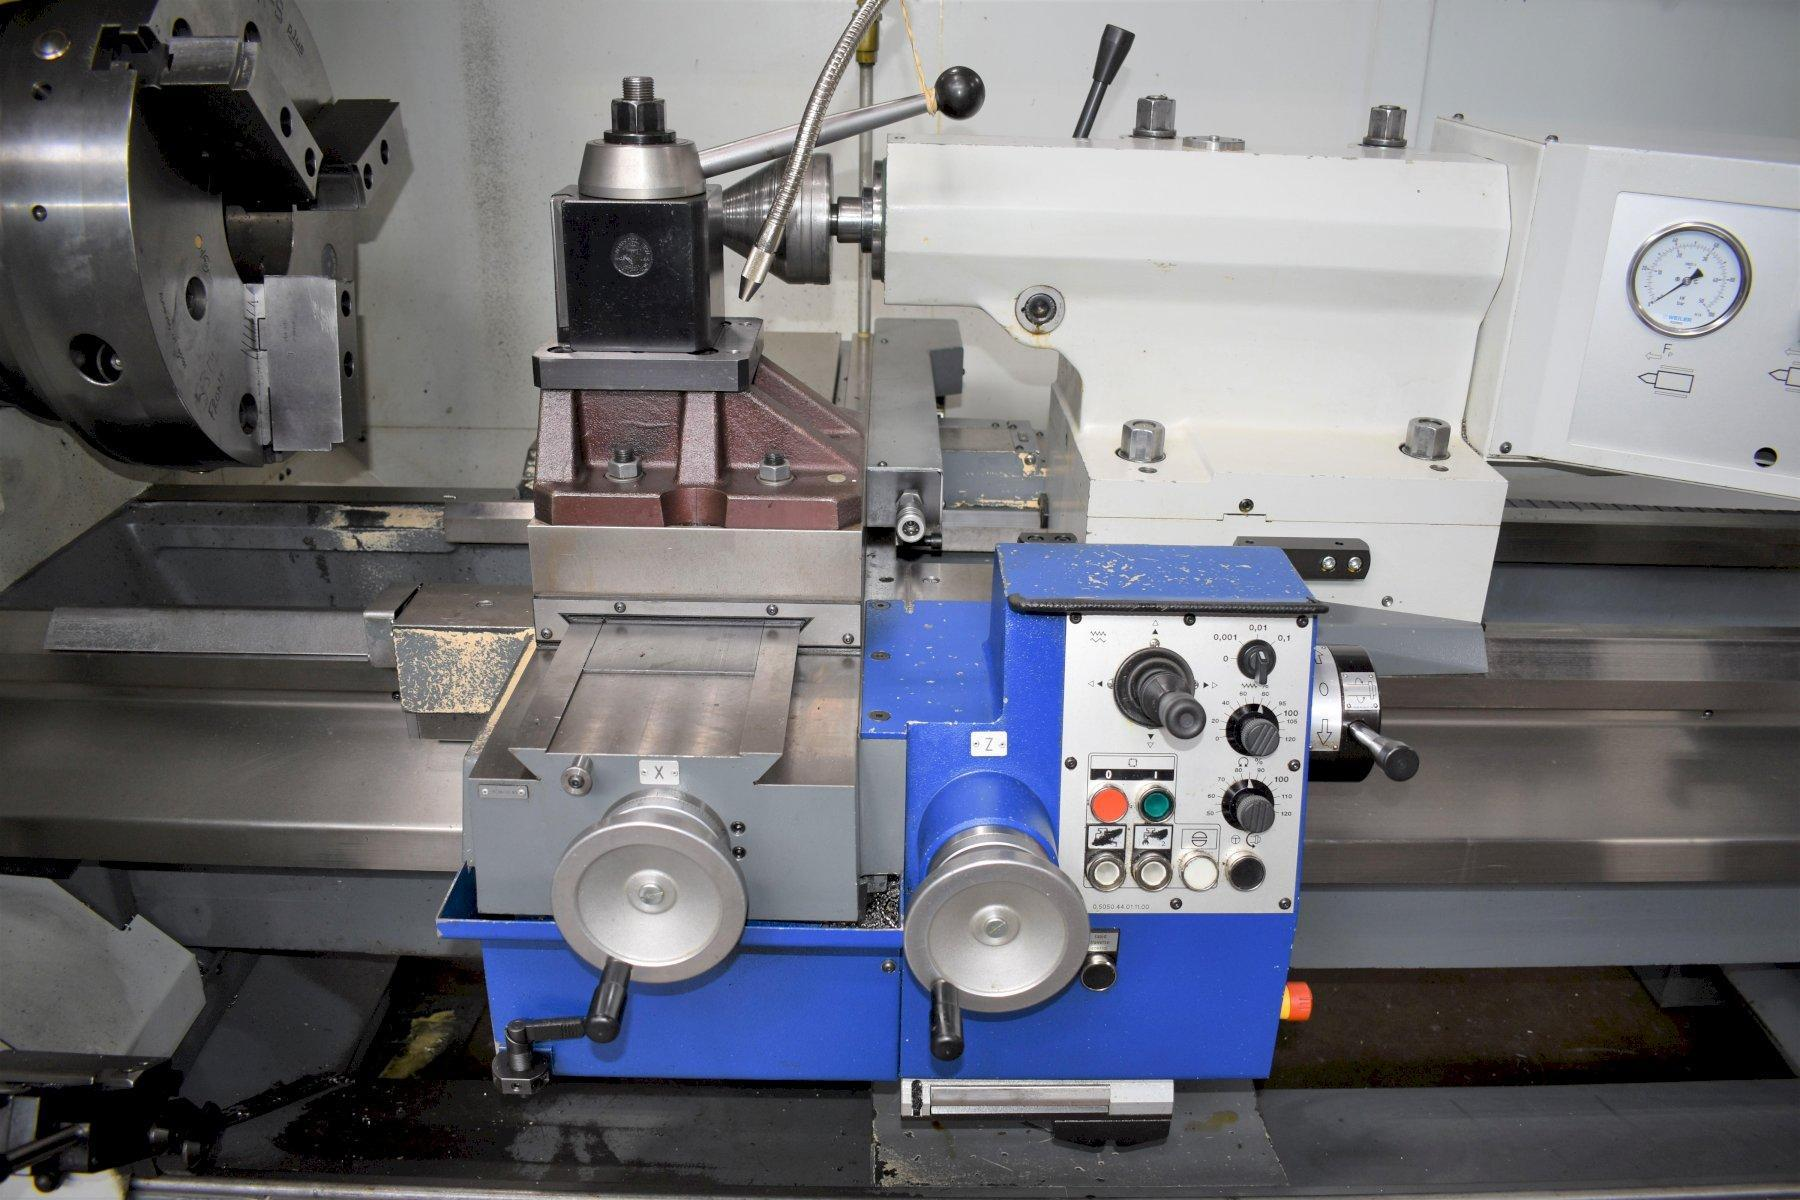 """WEILER E70 x 2000, Siemens 840D CNC Control (Weiler SL2 Software), Lots of CNC Control Options including Teach Functions, 20"""" 3-Jaw Chuck, 6"""" Spindle Bore, 28"""" Max Swing, 80"""" Between Centers, Hydraulic Quill, Aloris Tool Post, 48 HP Spindle Motor, Chip Conveyor & Coolant System, New 2015."""